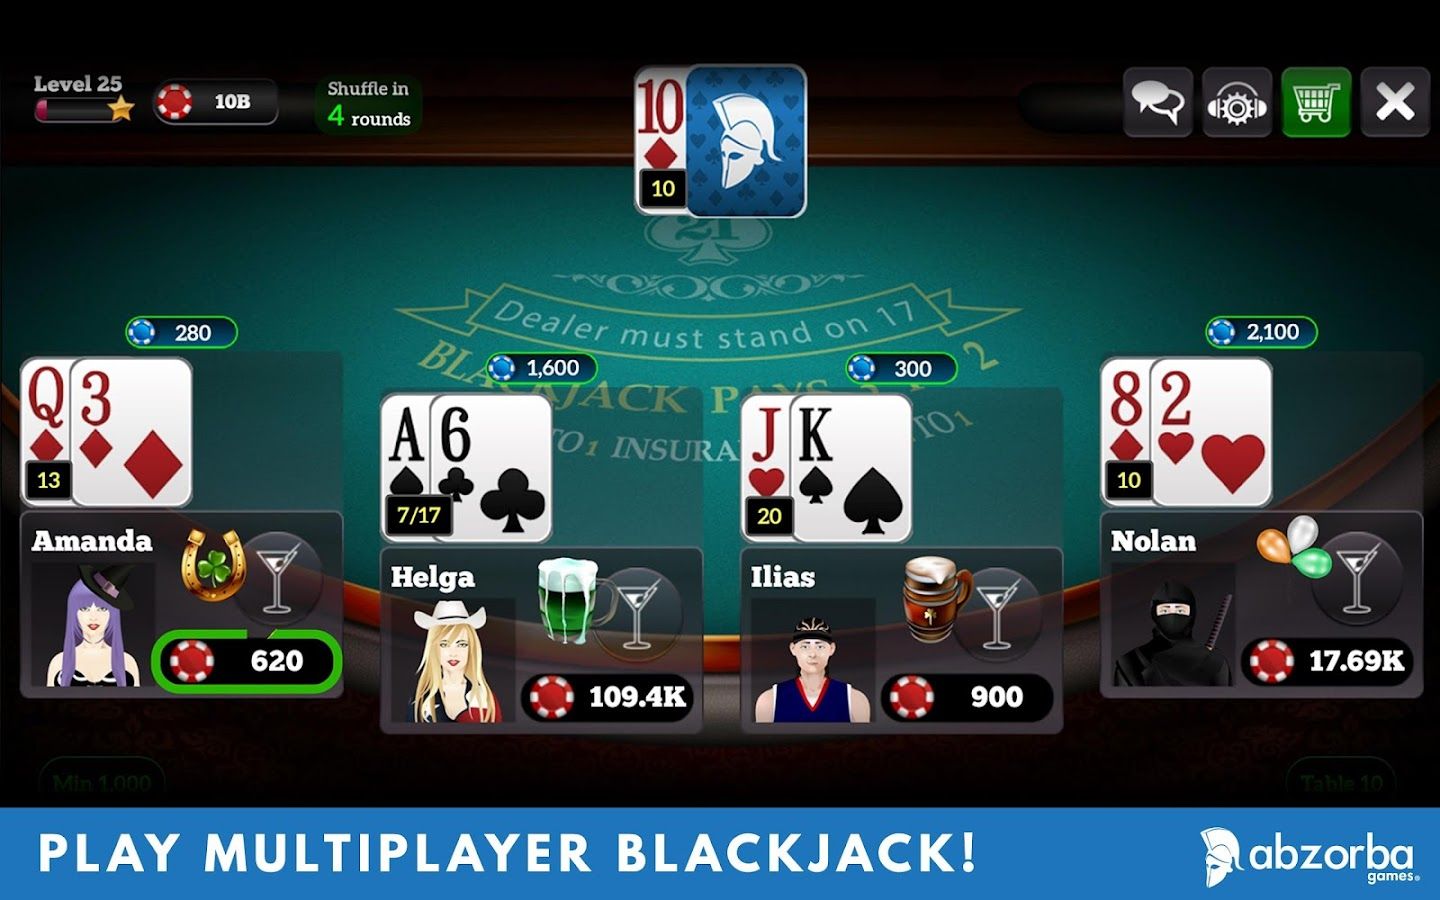 2 player blackjack games